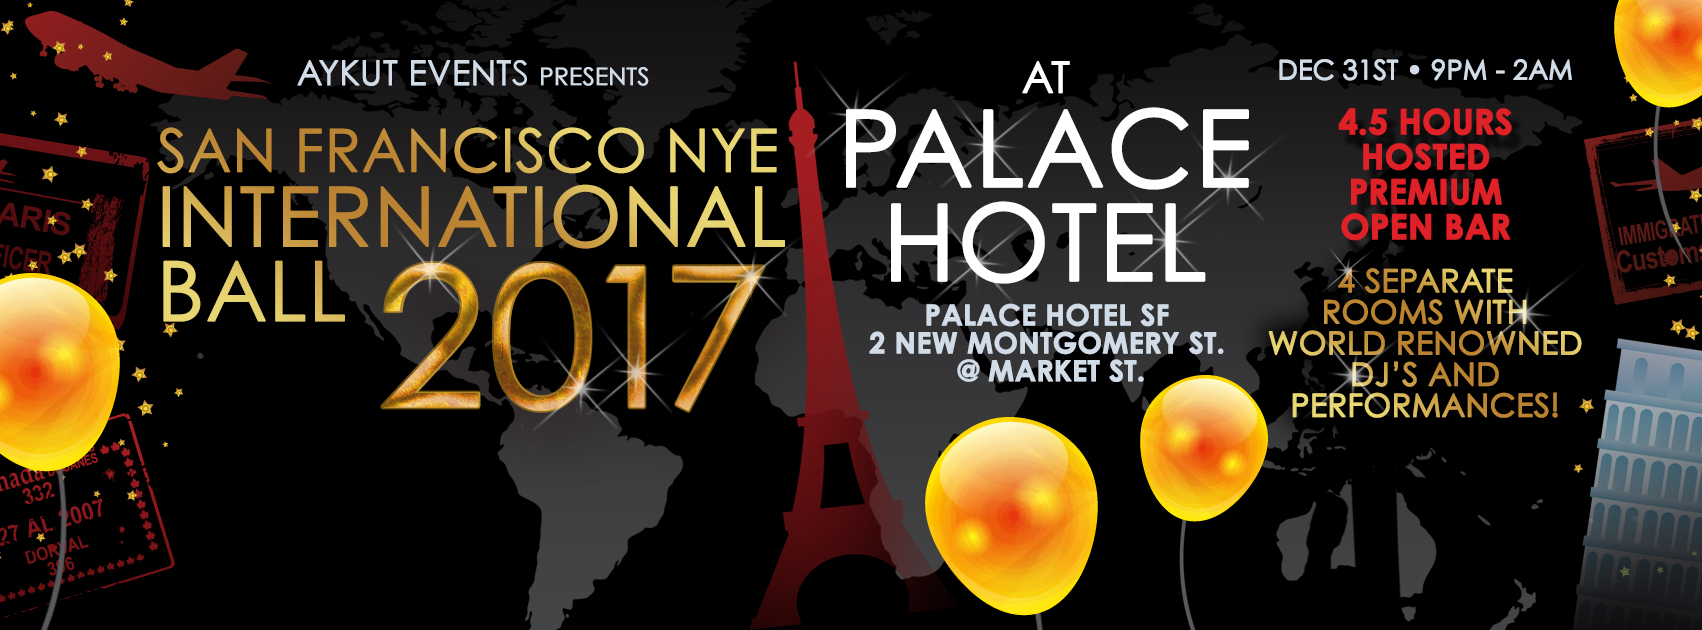 Palace Hotel San Francisco New Years Eve Party